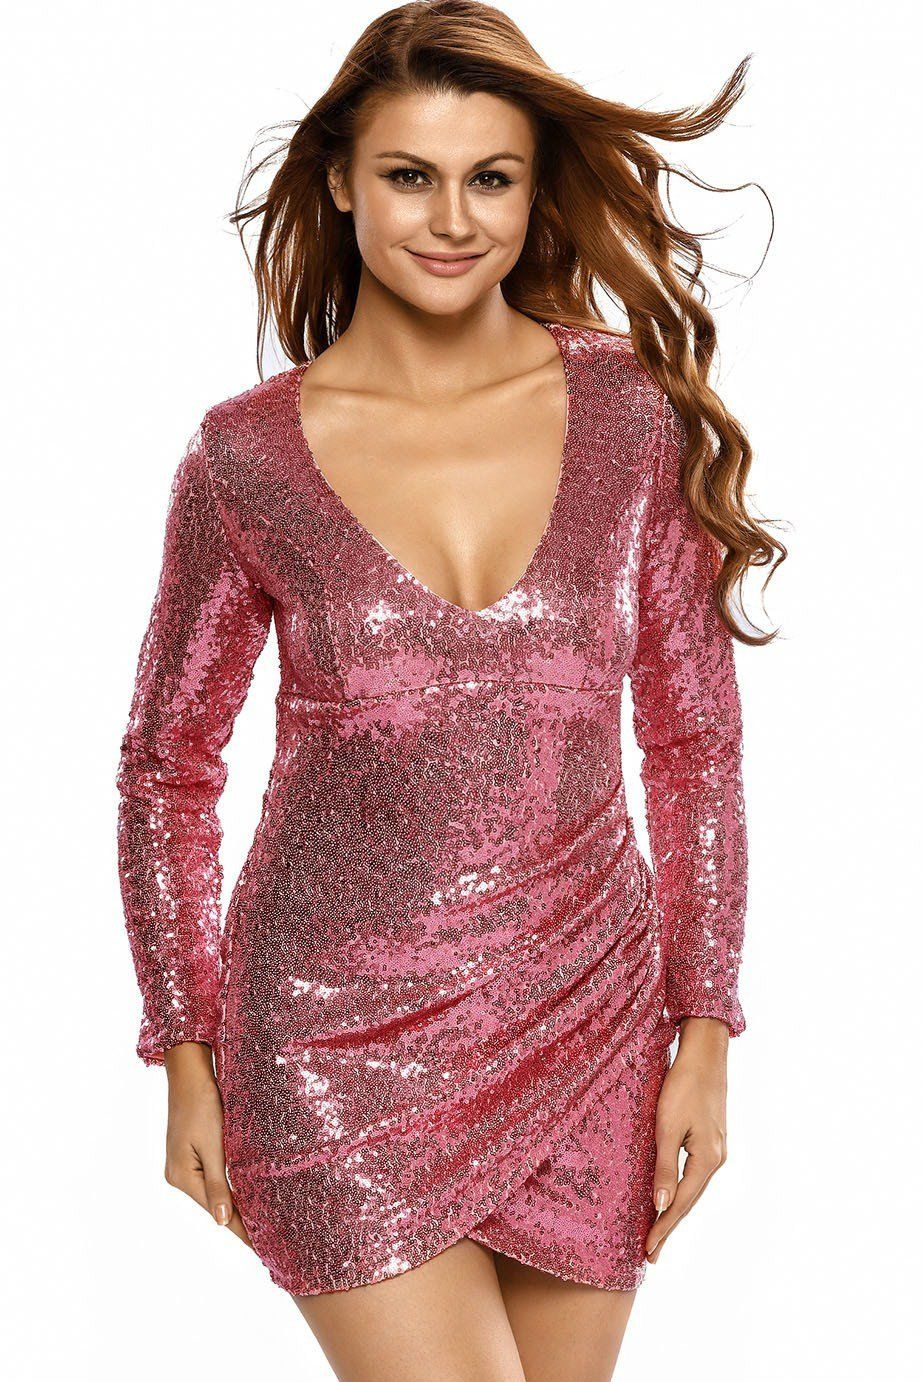 Pink Ruched Long Sleeve Nightclub Cocktail Sequin Dress | Sequins ...